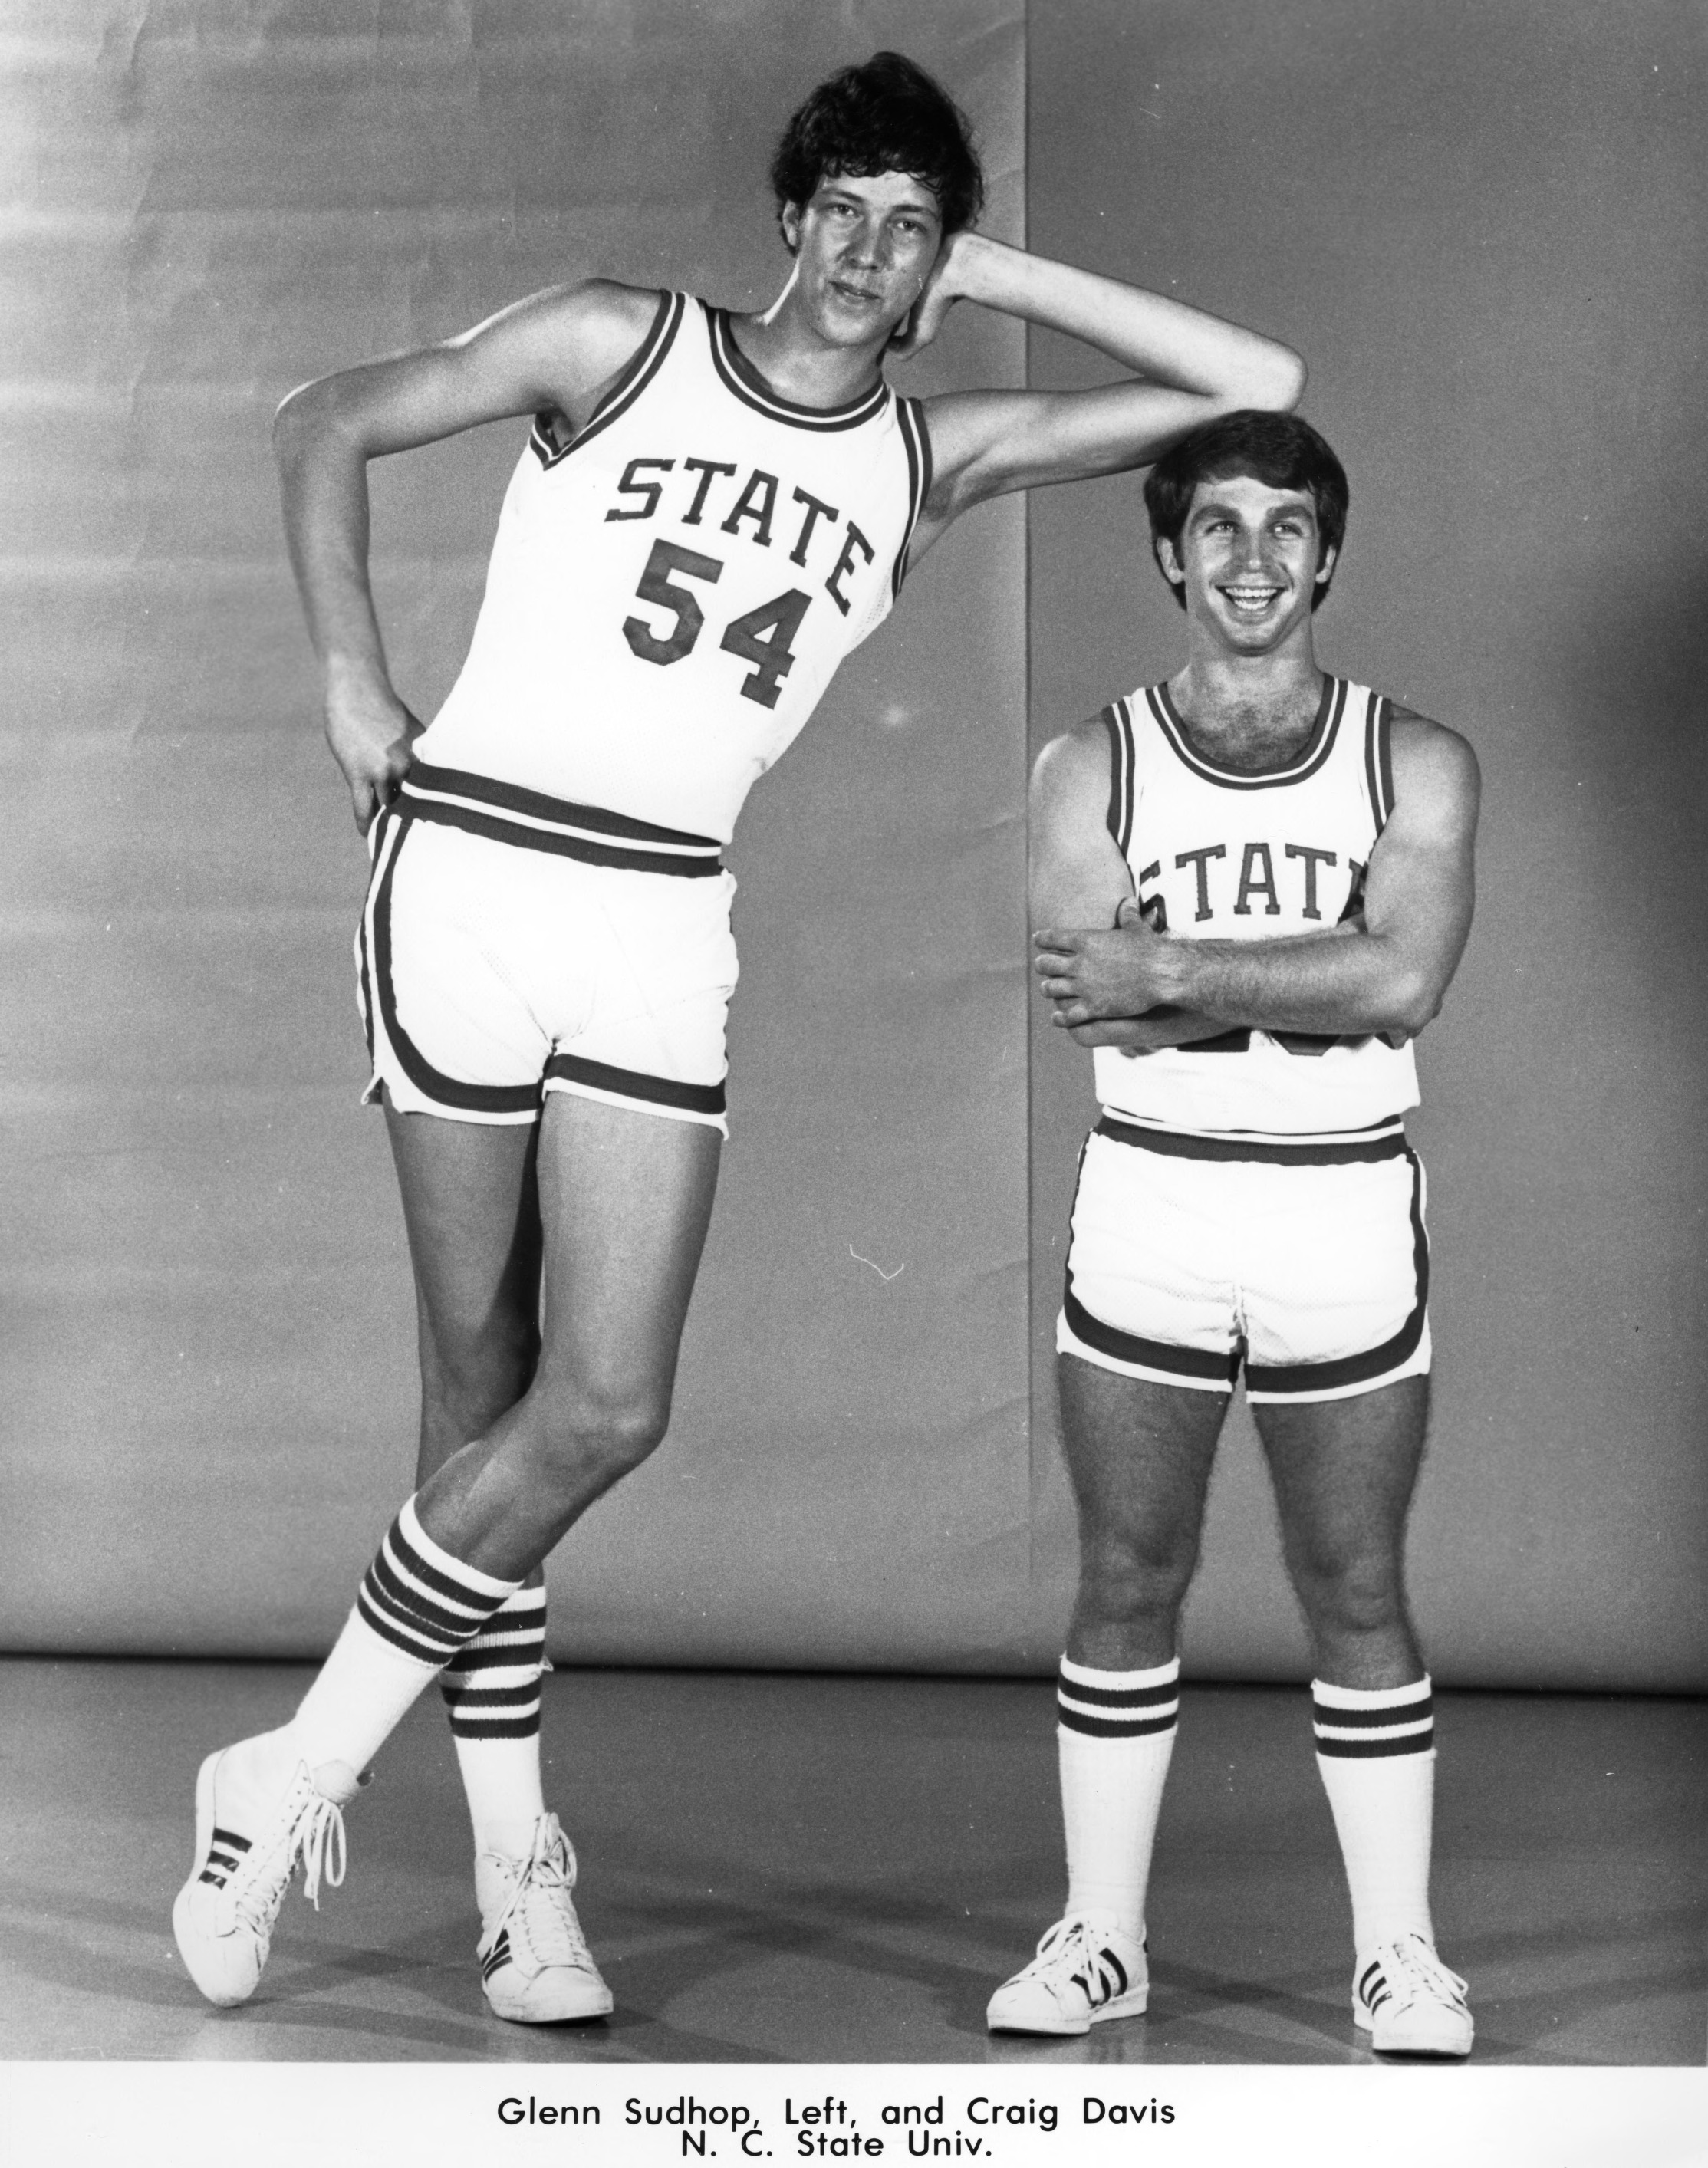 Glenn Sudhop, left, and Craig Davis, N.C. State University basketball